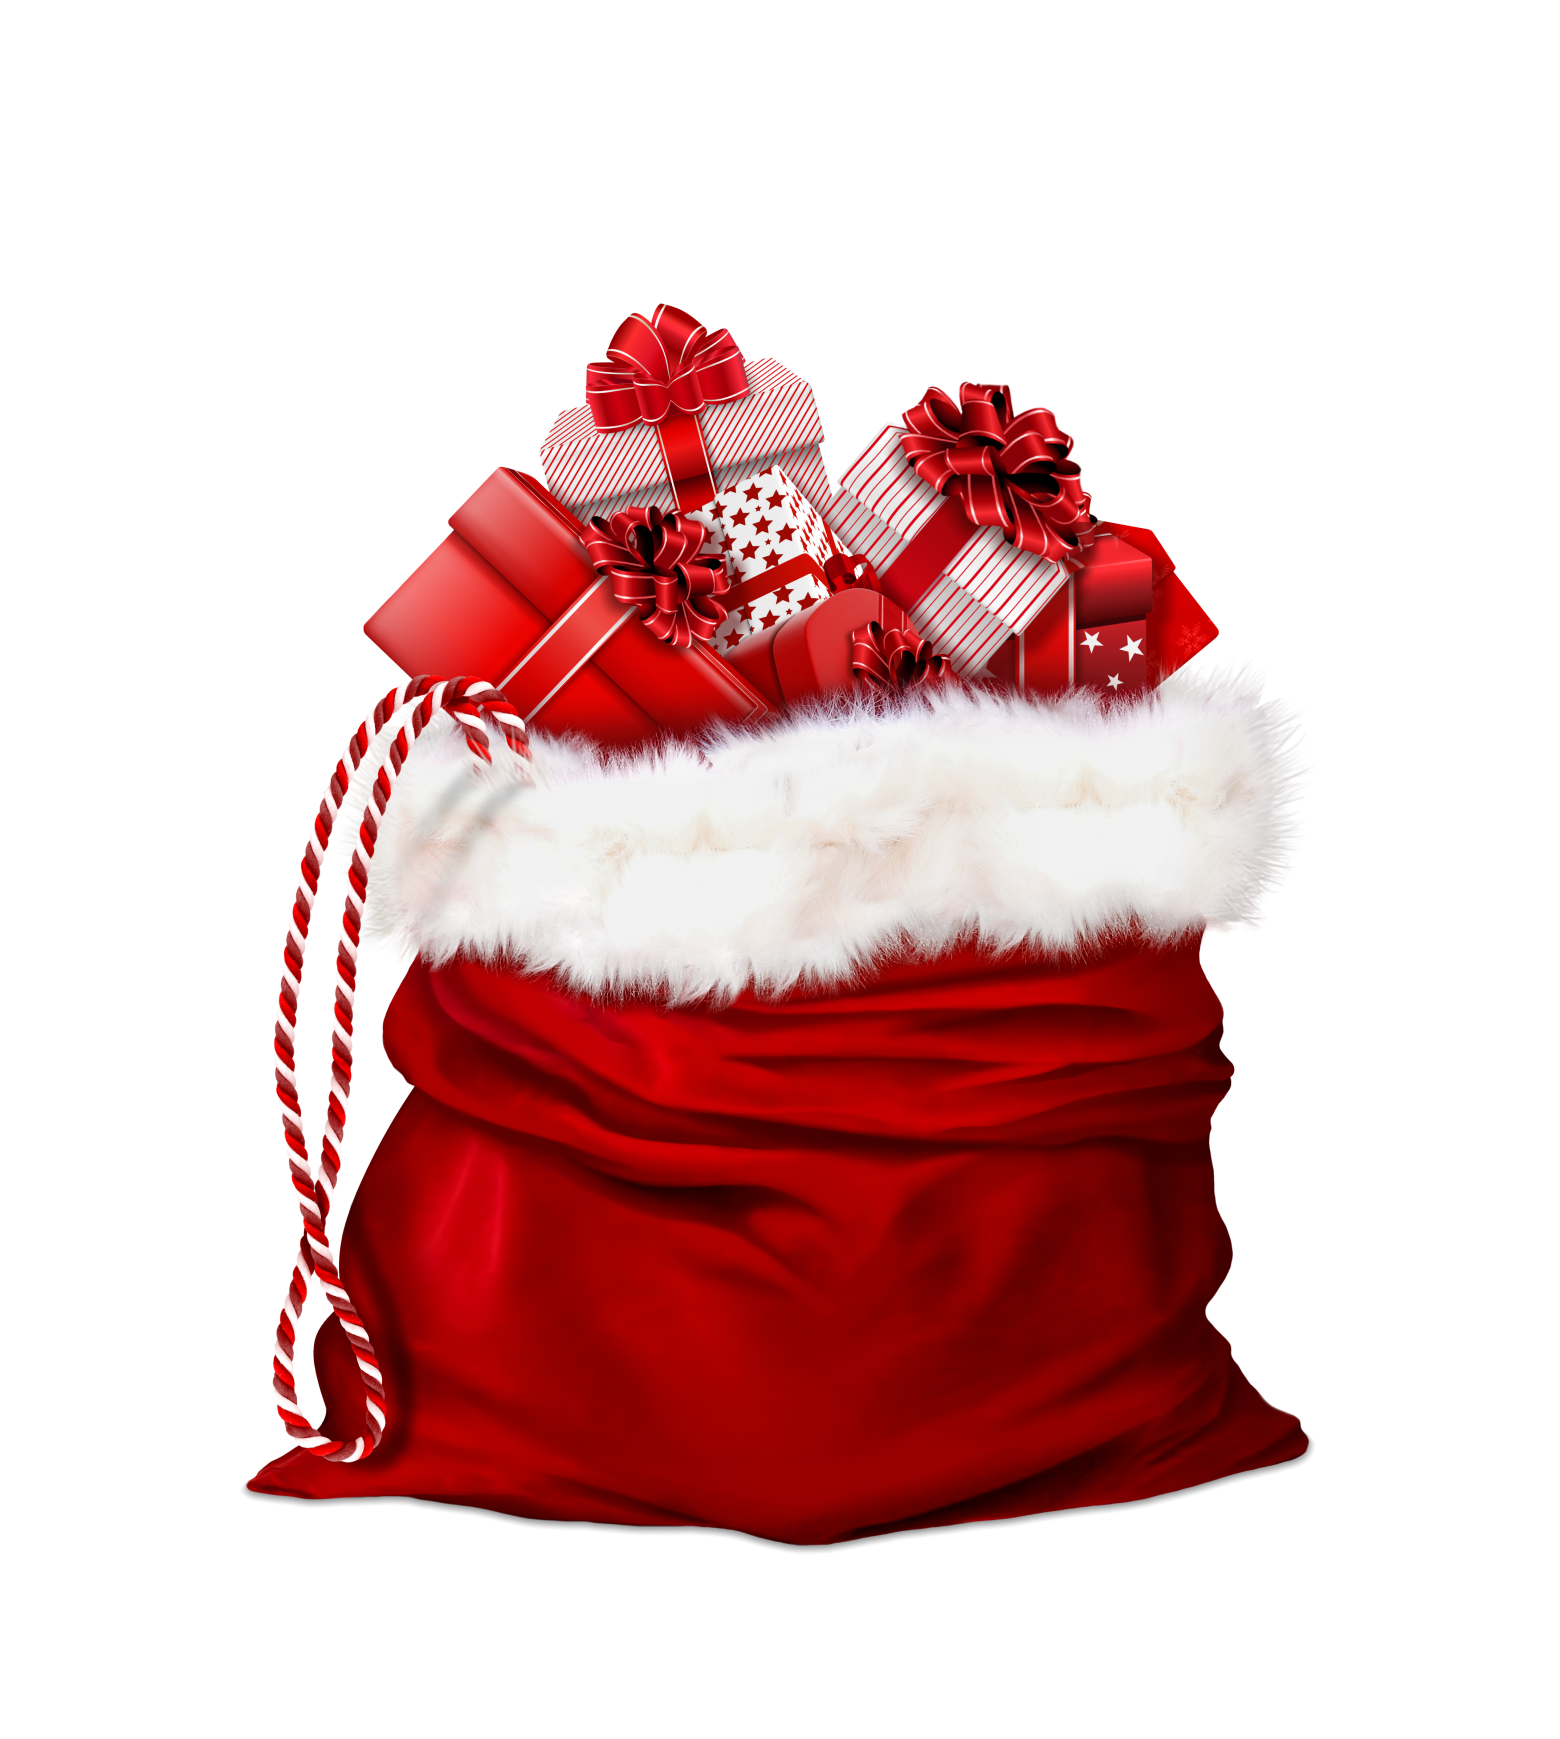 bag-for-gifts-2927962